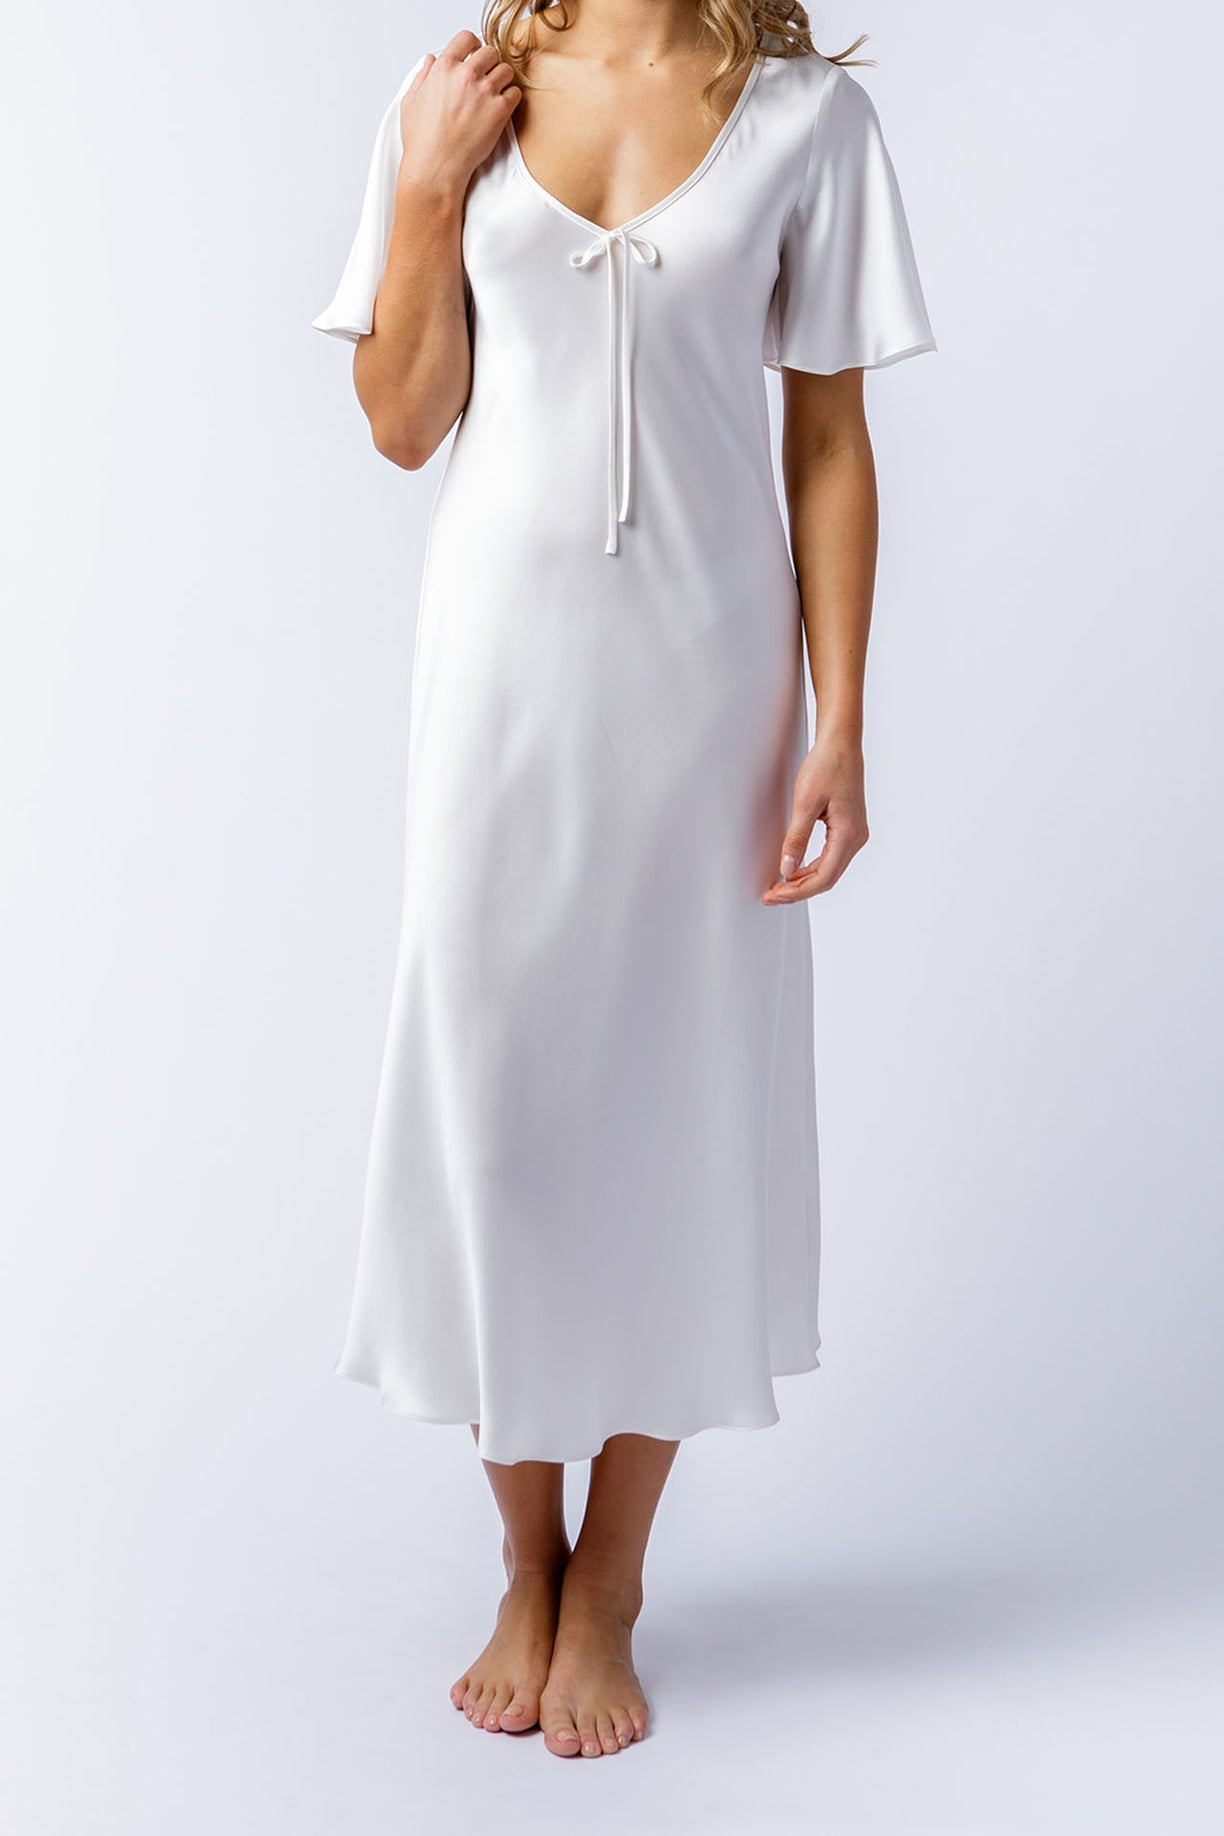 Liz dress in alabaster, front alt